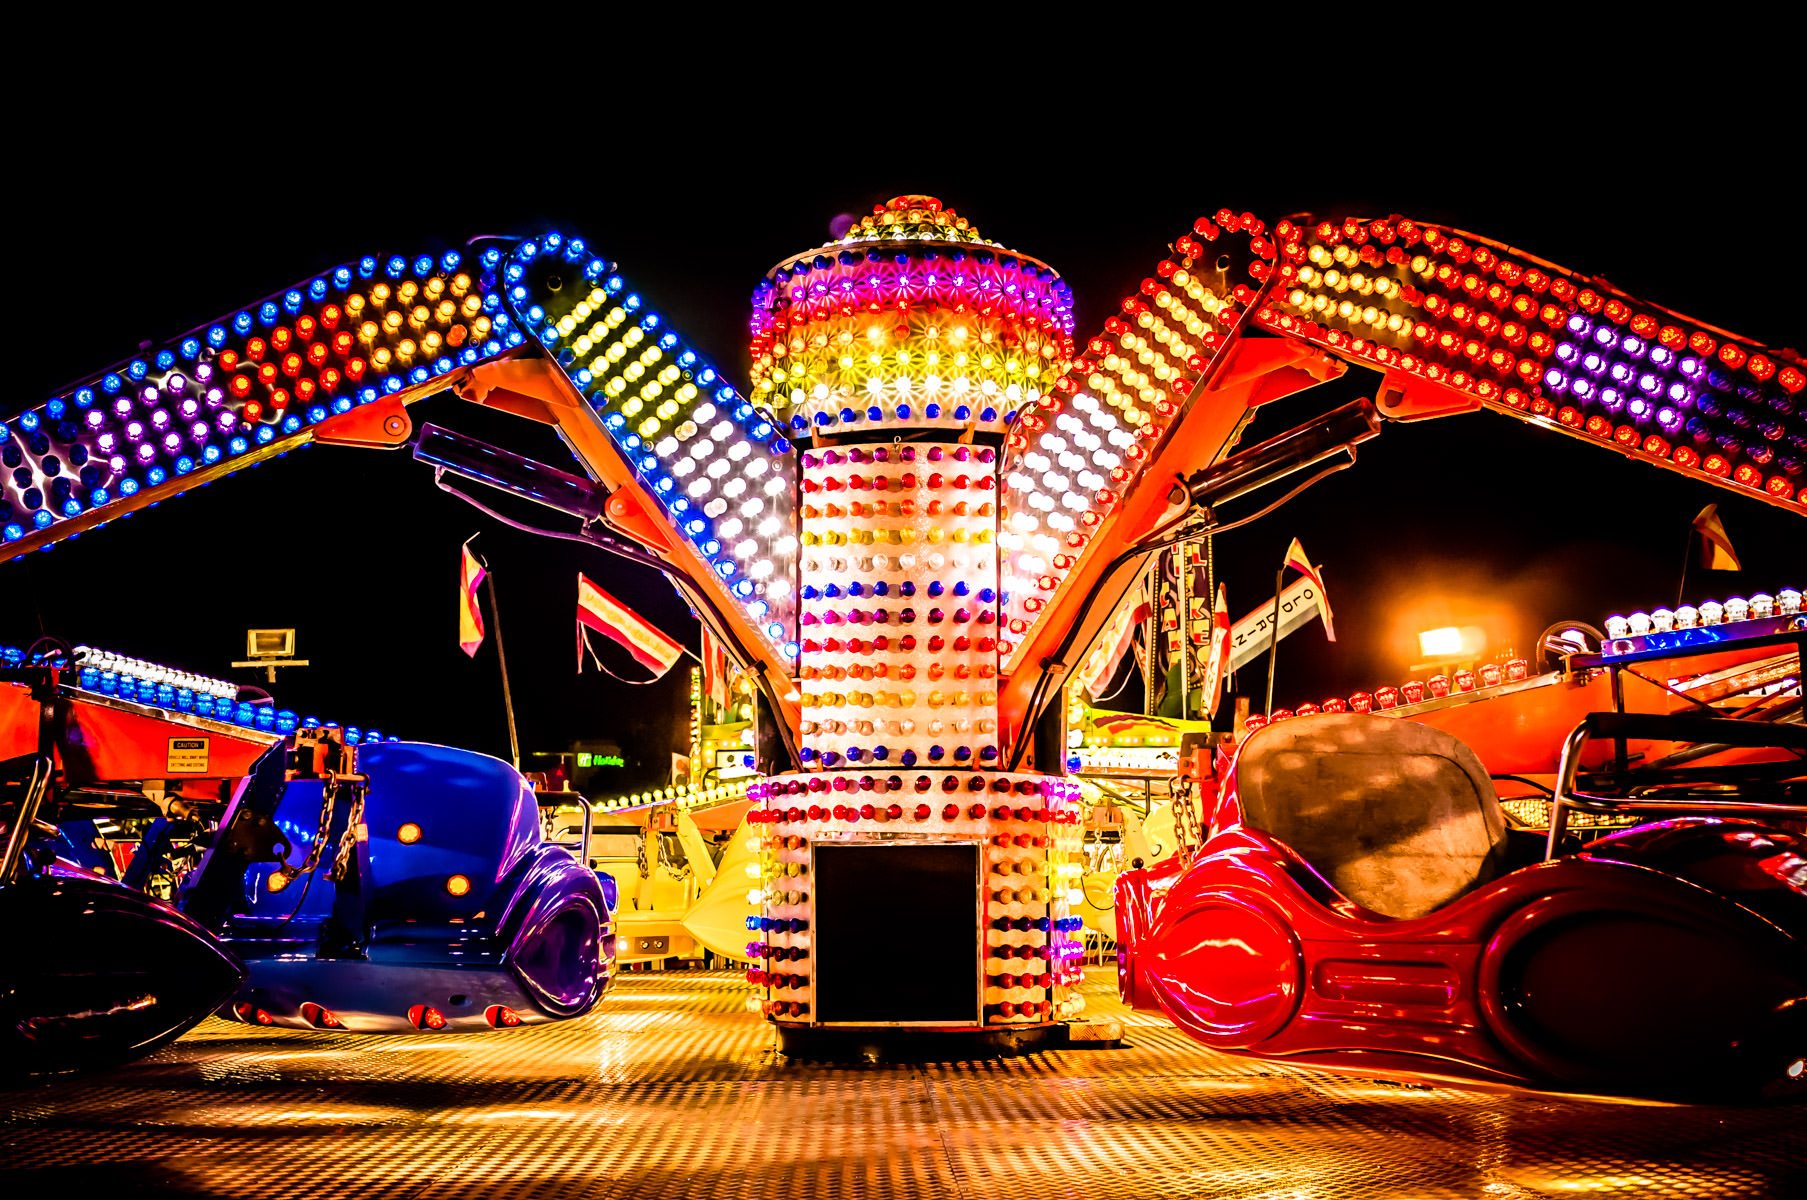 Another shot of a carnival ride at Addison Oktoberfest, Addison, Texas.